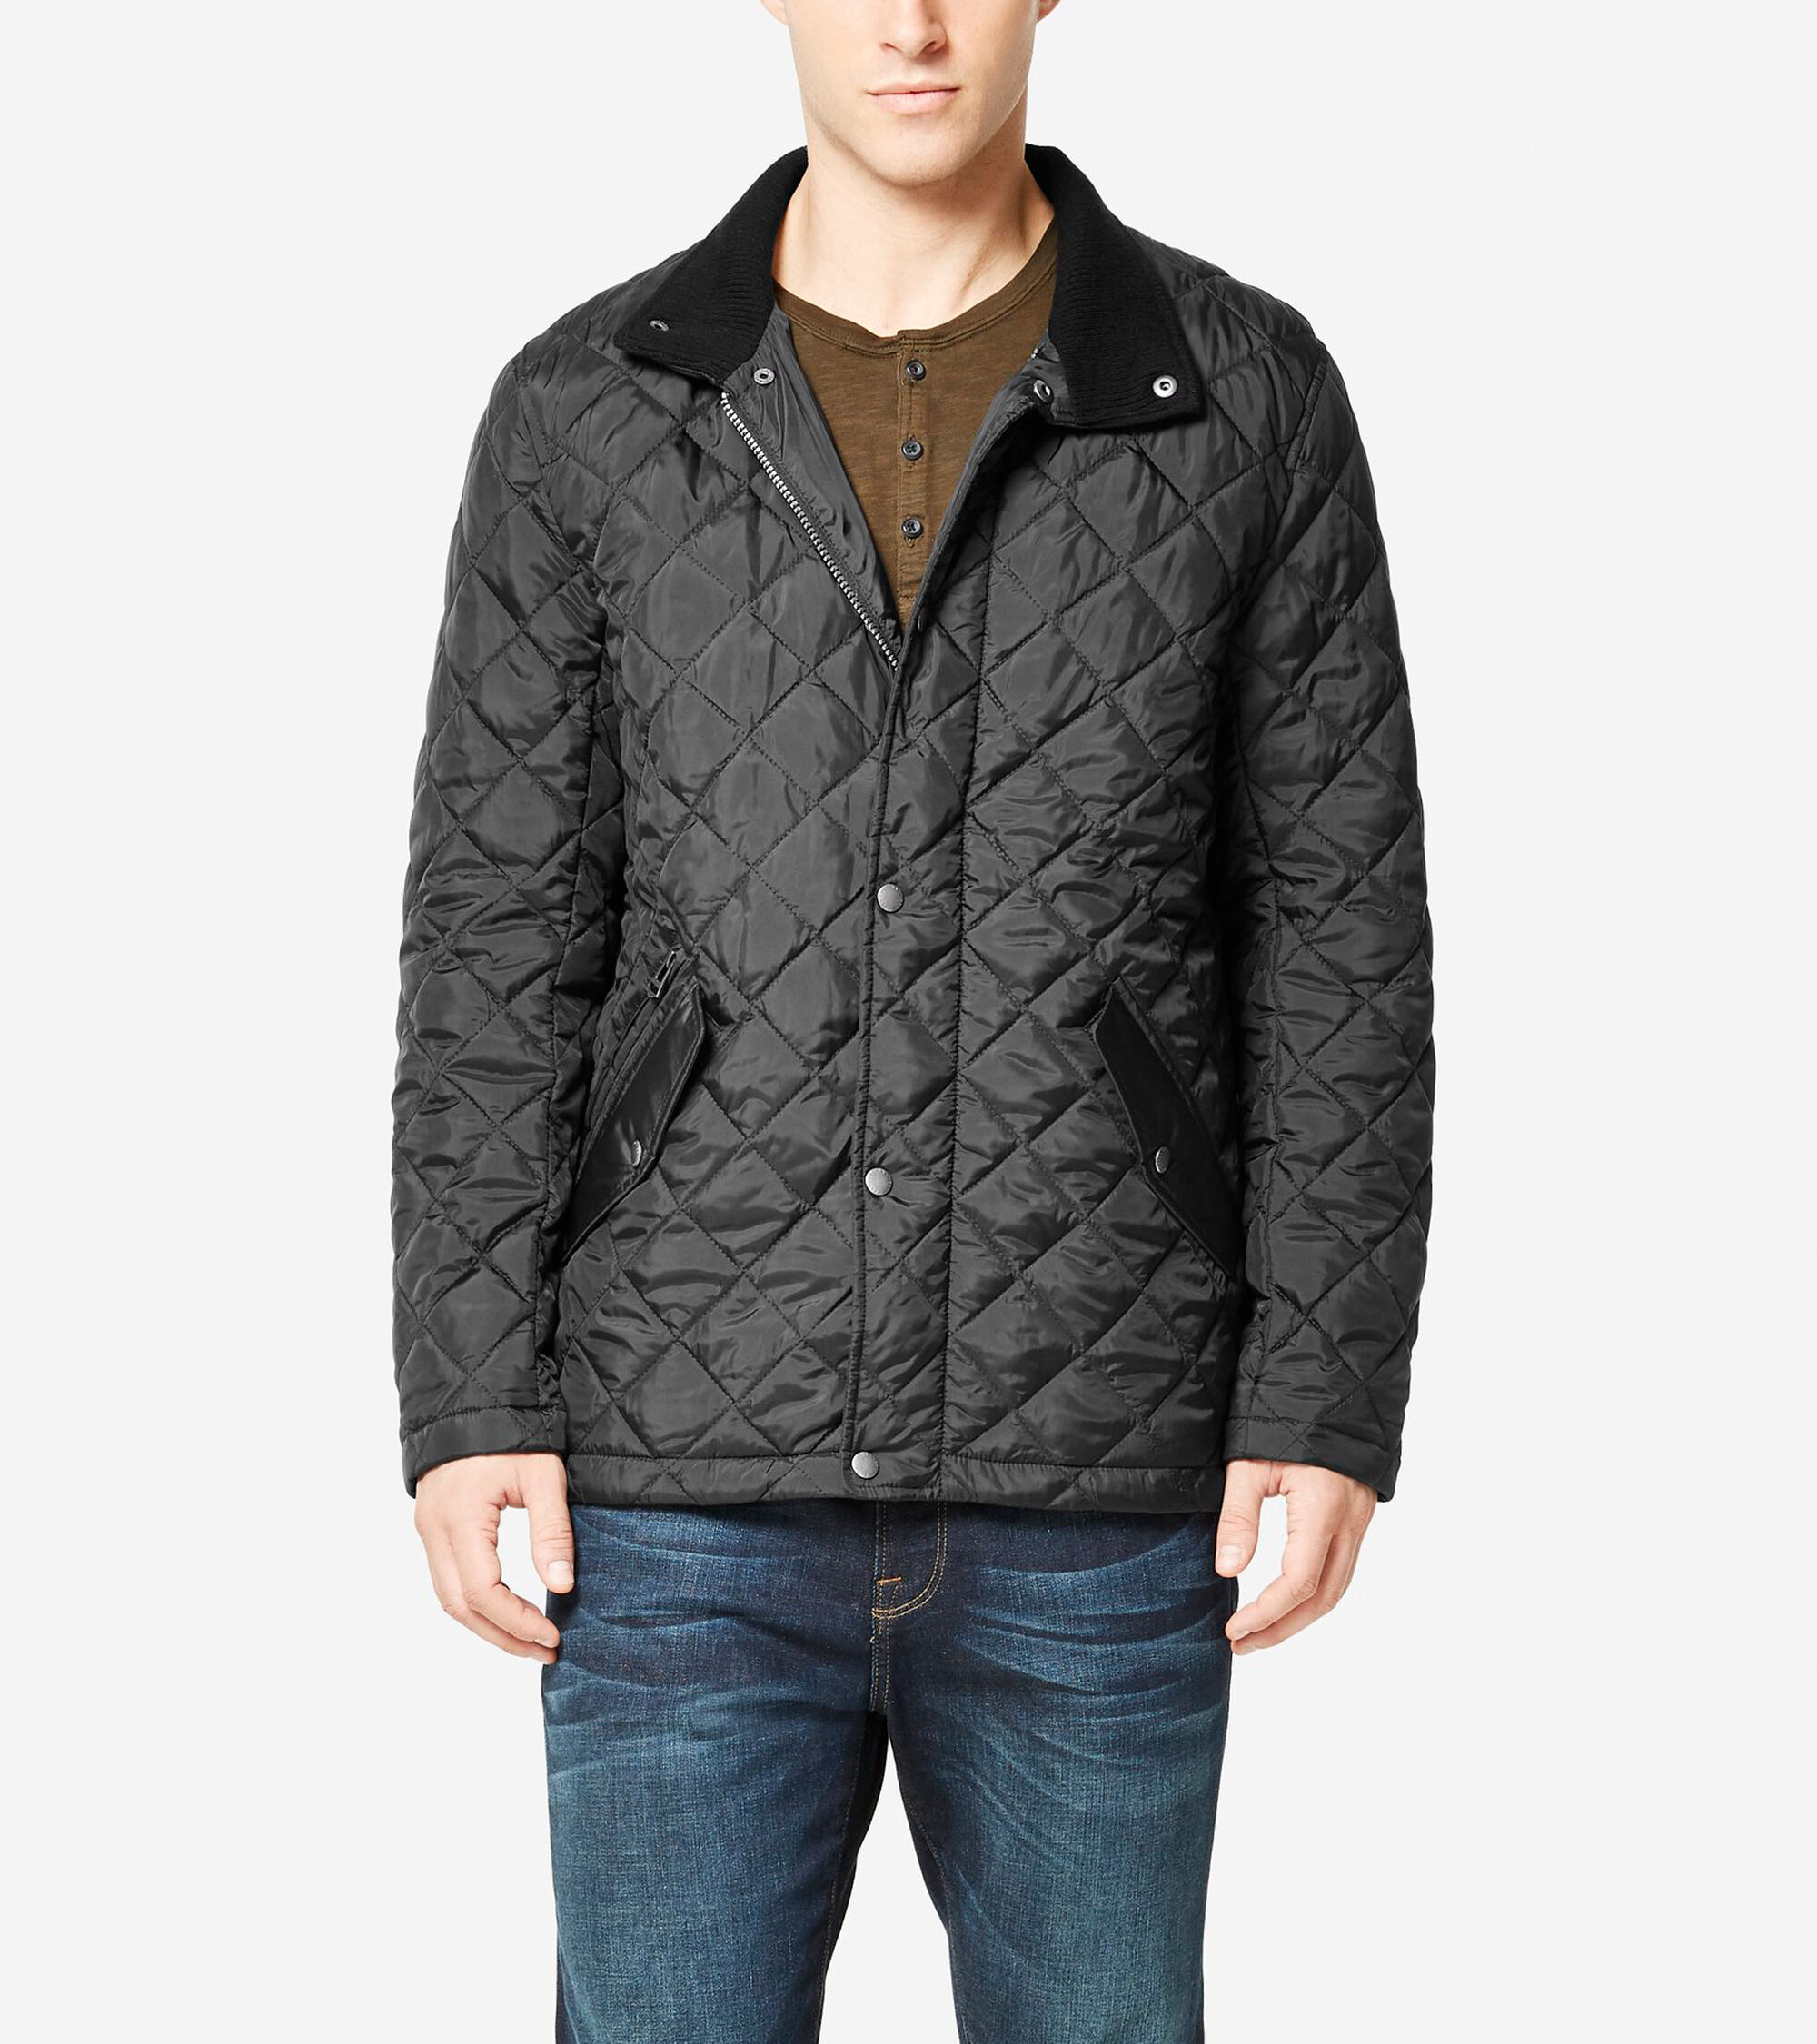 lole packable jkt inc jacket w barns black pack women womens barn s stores emeline products play